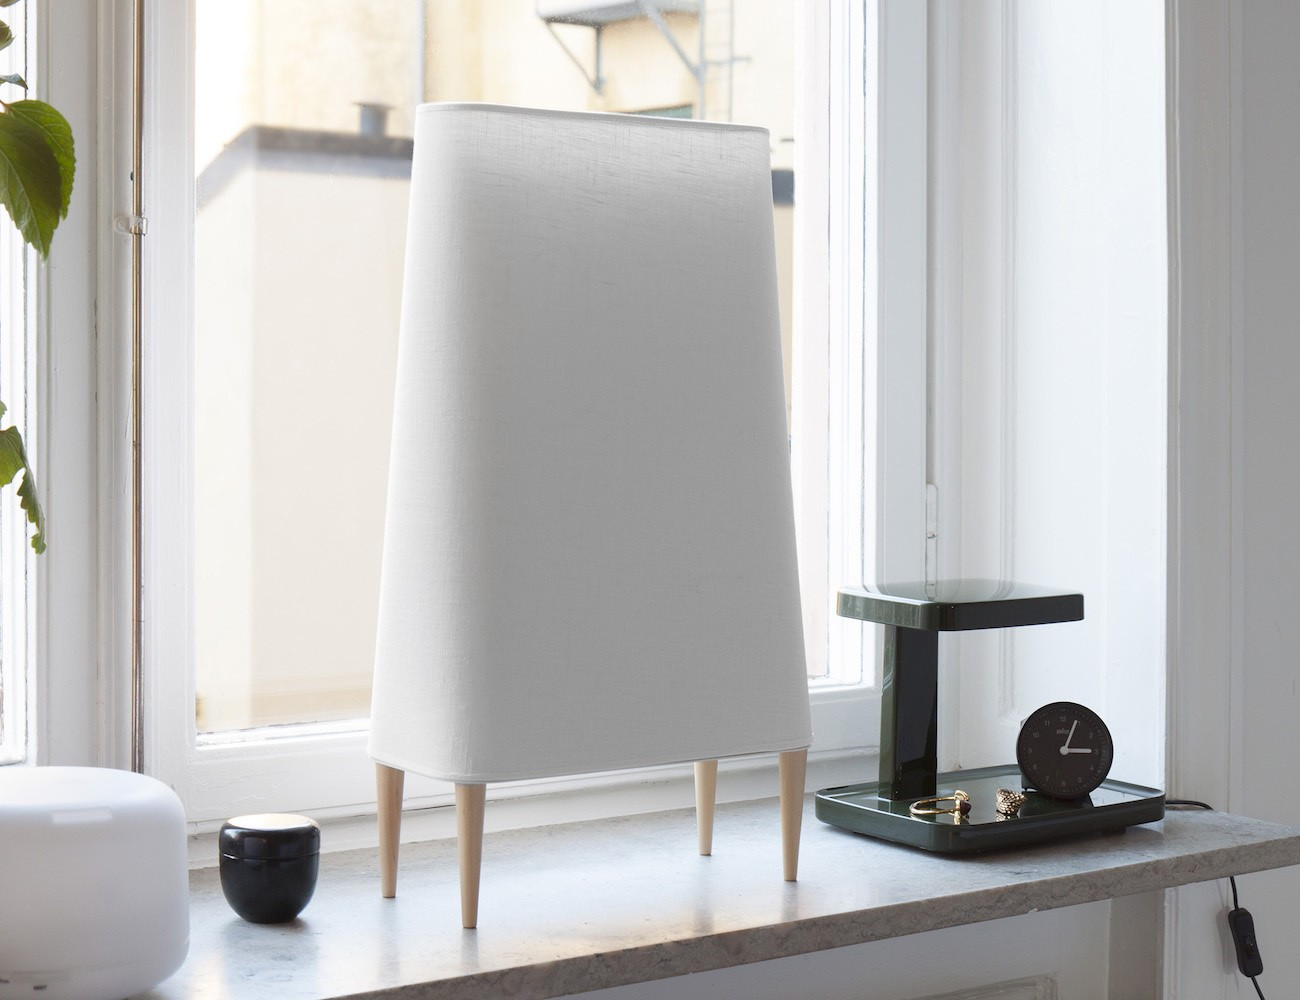 Sunnaform S5 Air Purifier And Designer Lamp